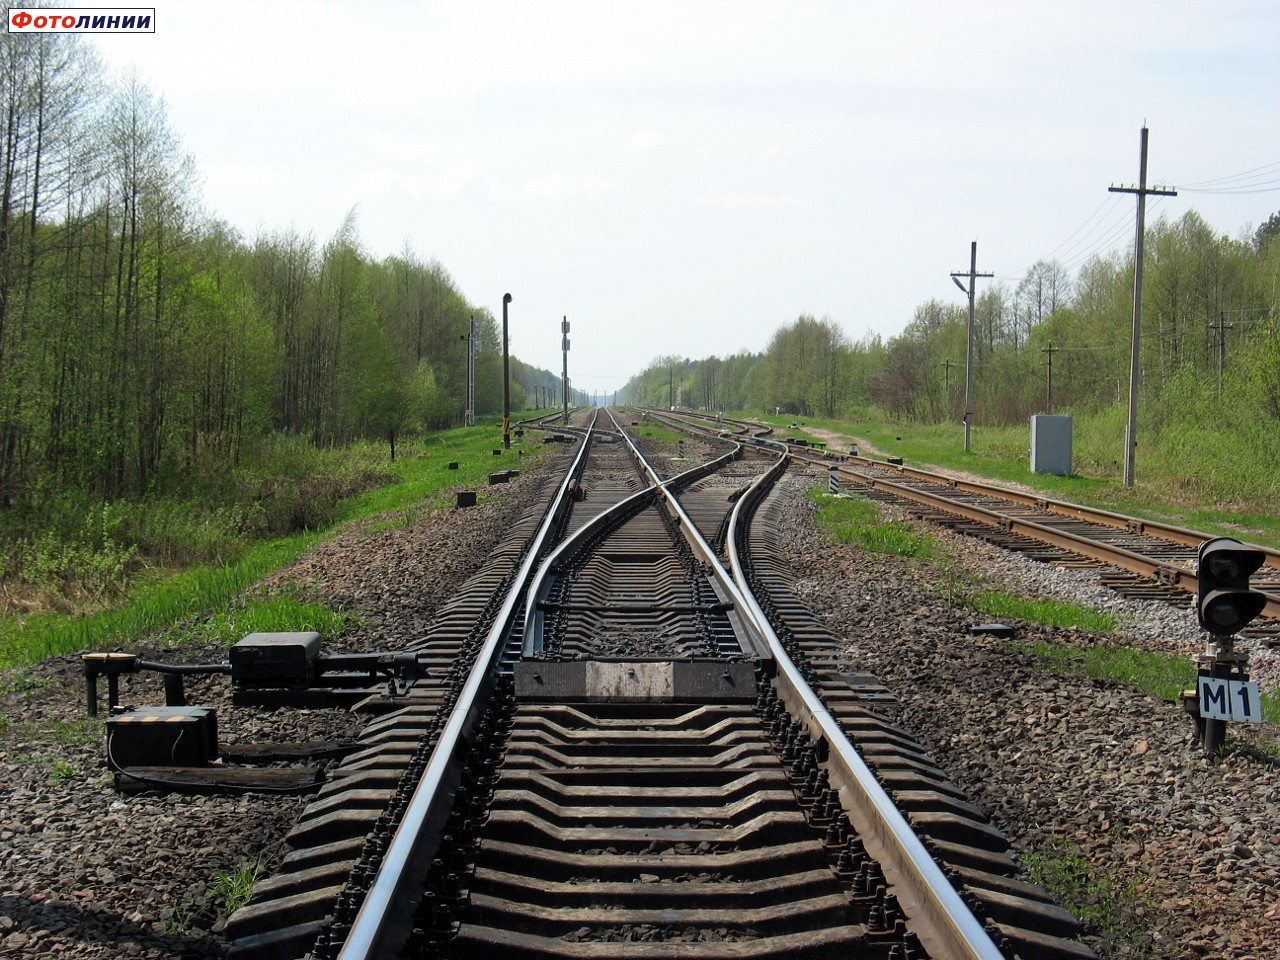 http://railwayz.info/photolines/images/52/1355230912.jpg